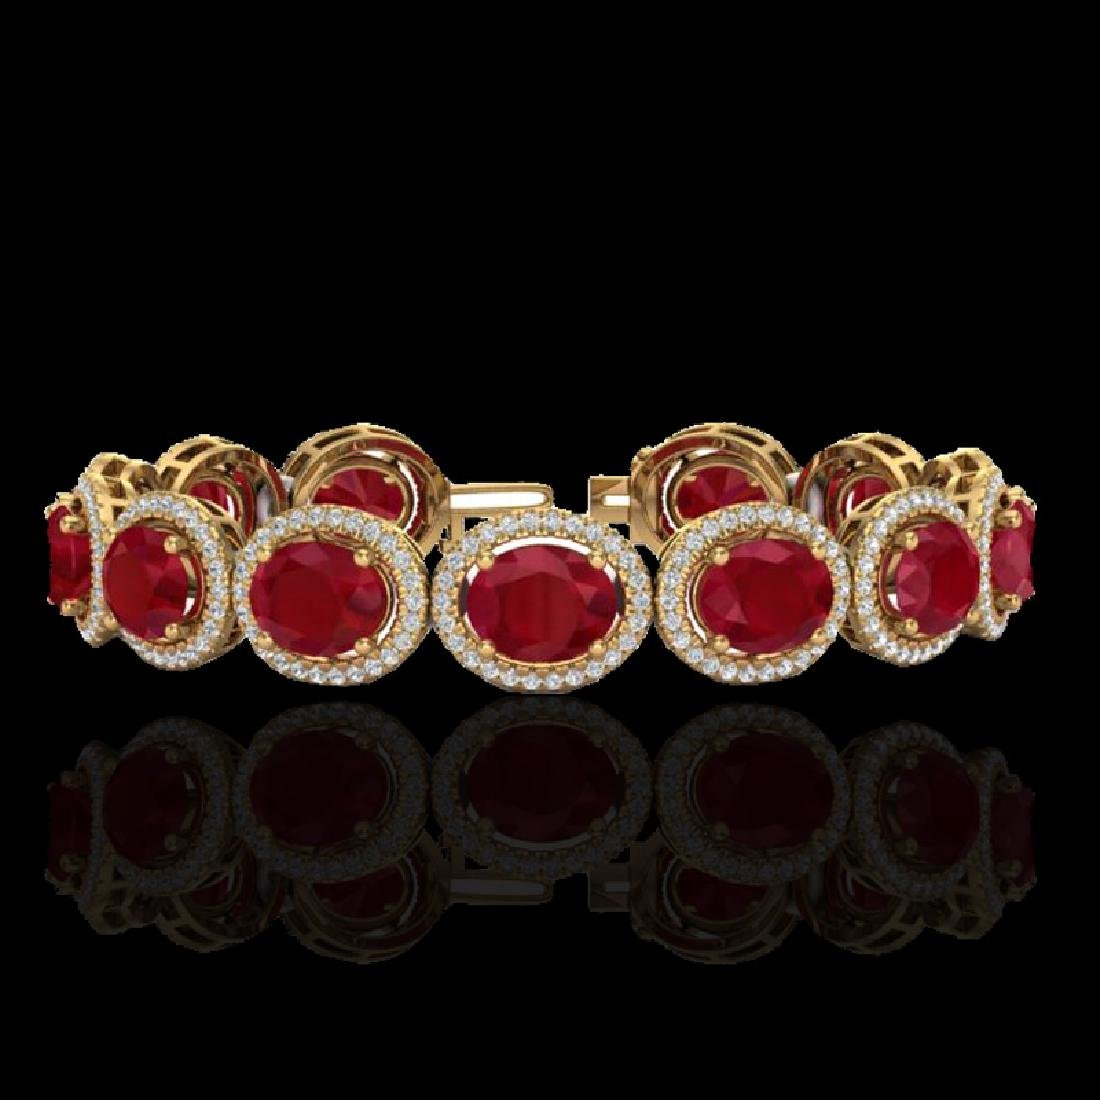 30 CTW Ruby & Micro Pave VS/SI Diamond Bracelet 10K